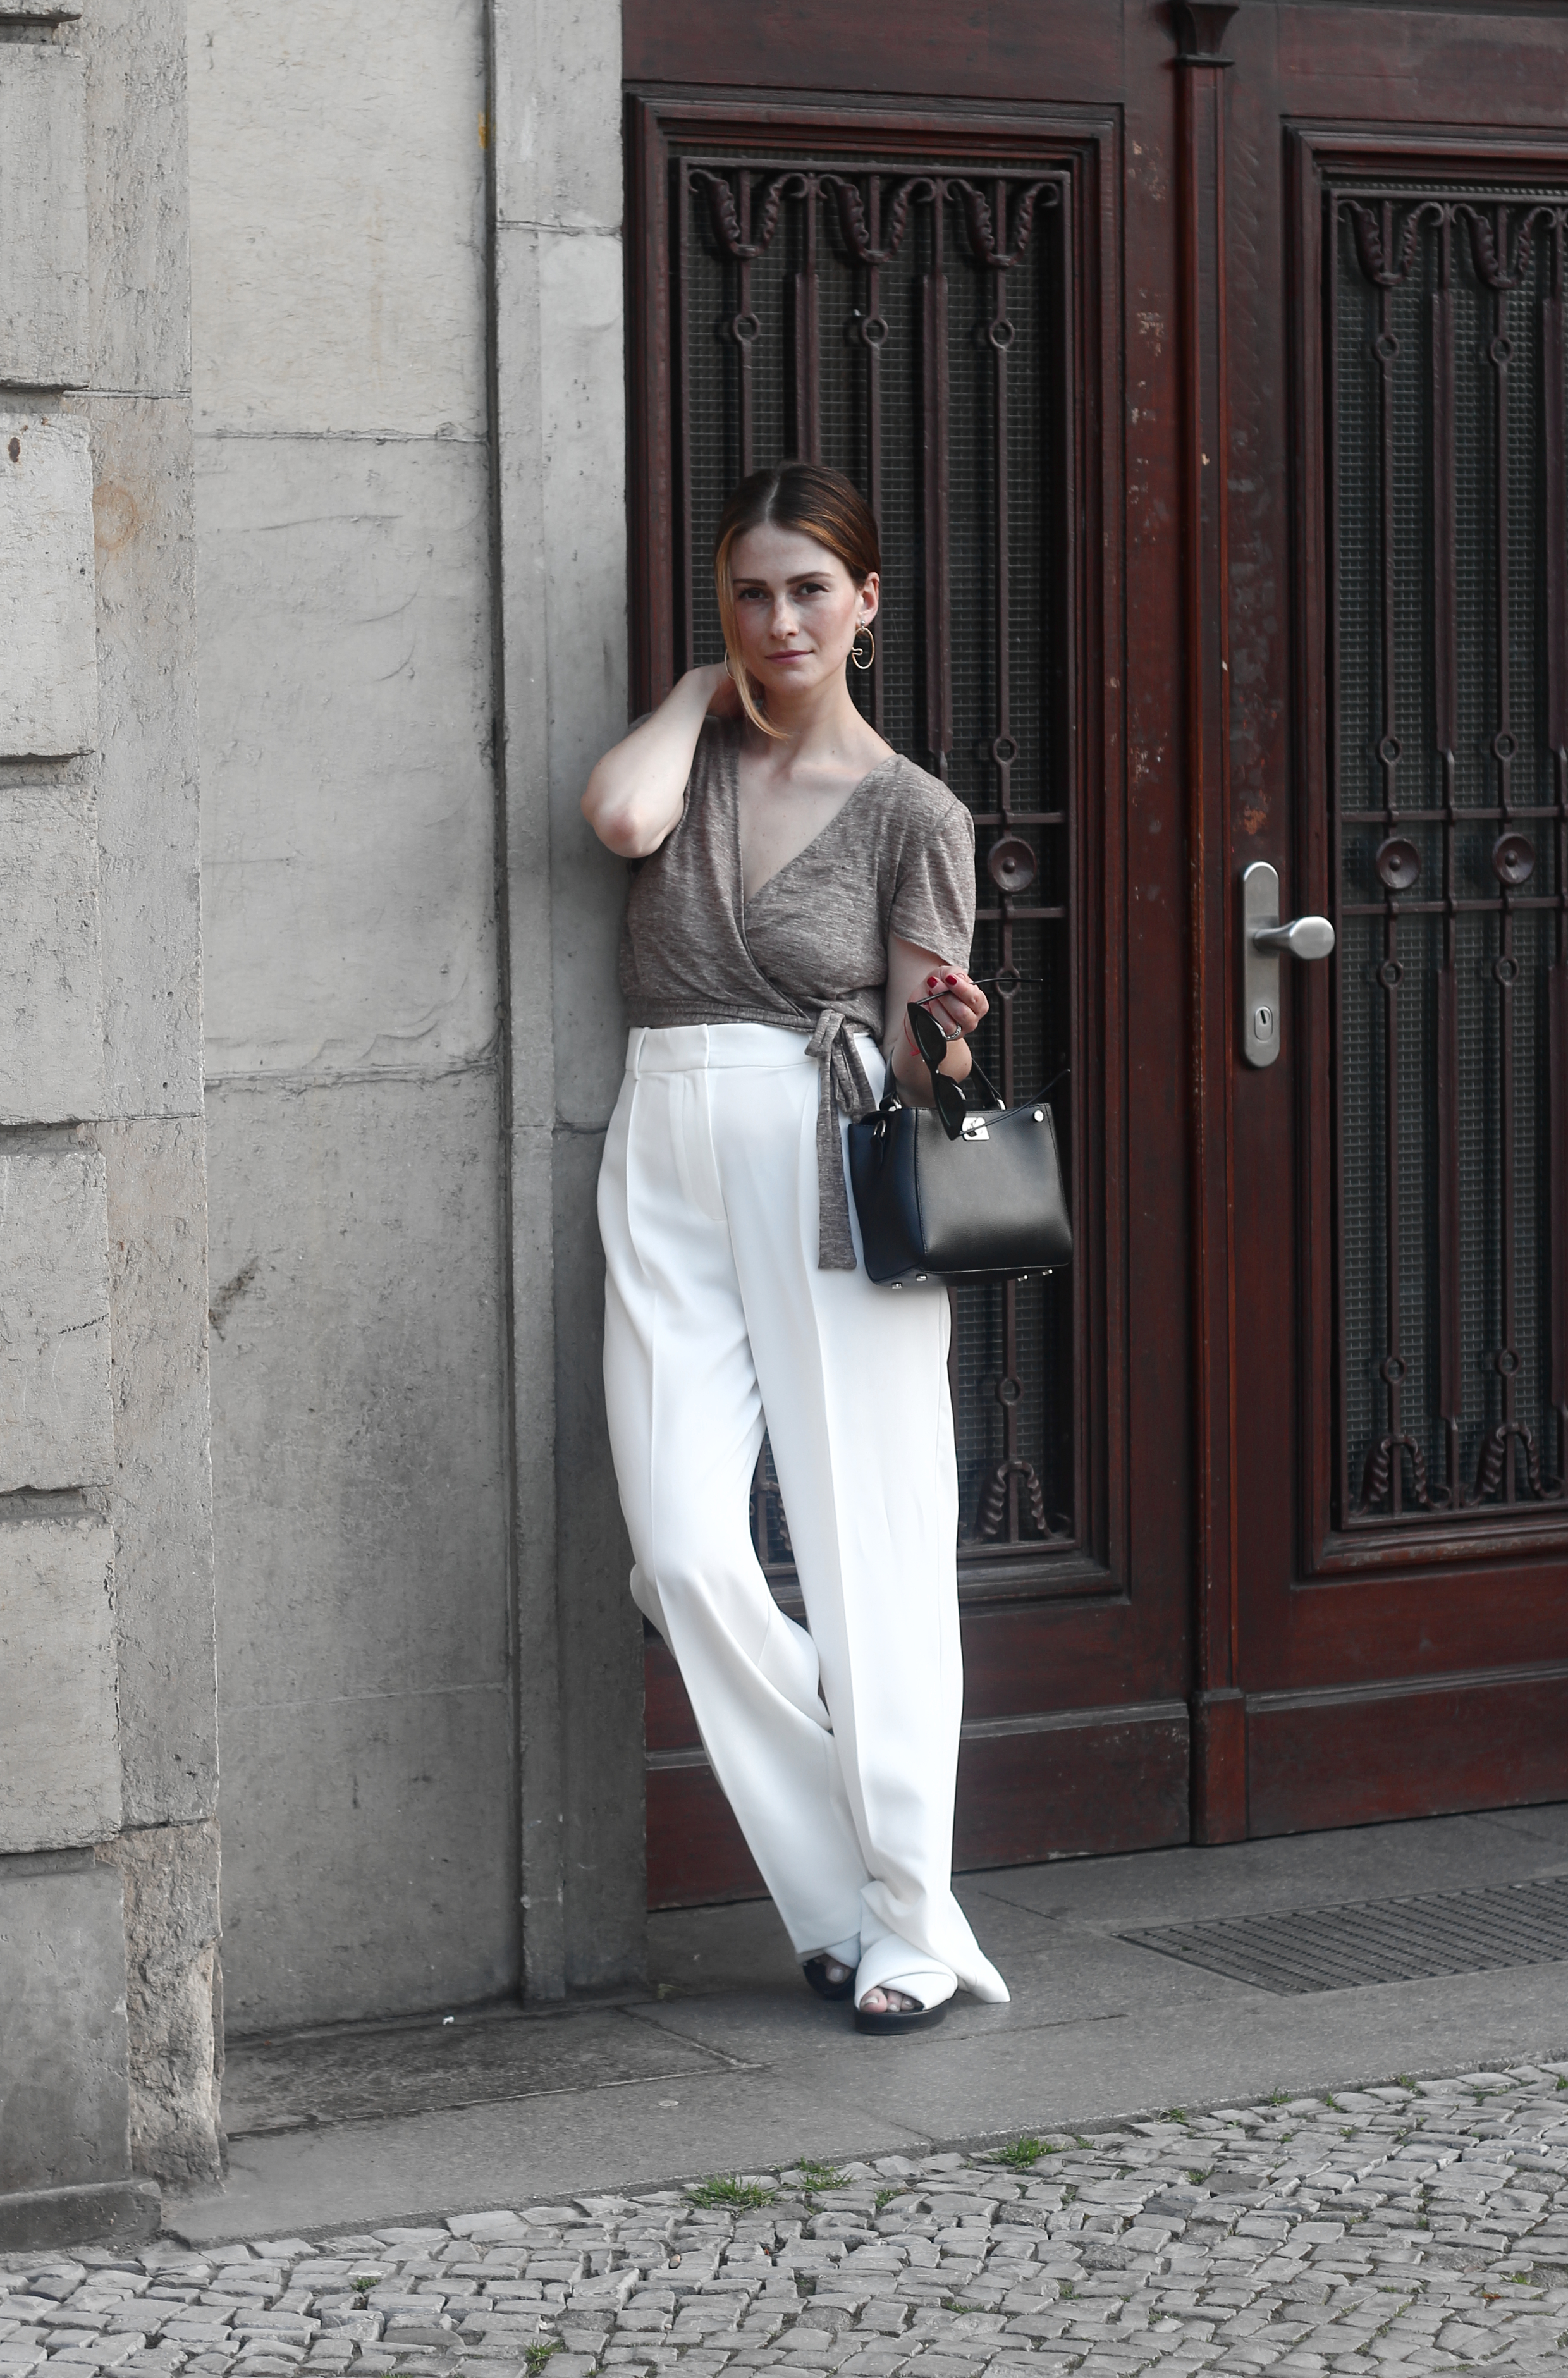 annaporter-white-trousers-croppedtop-summer-look-4